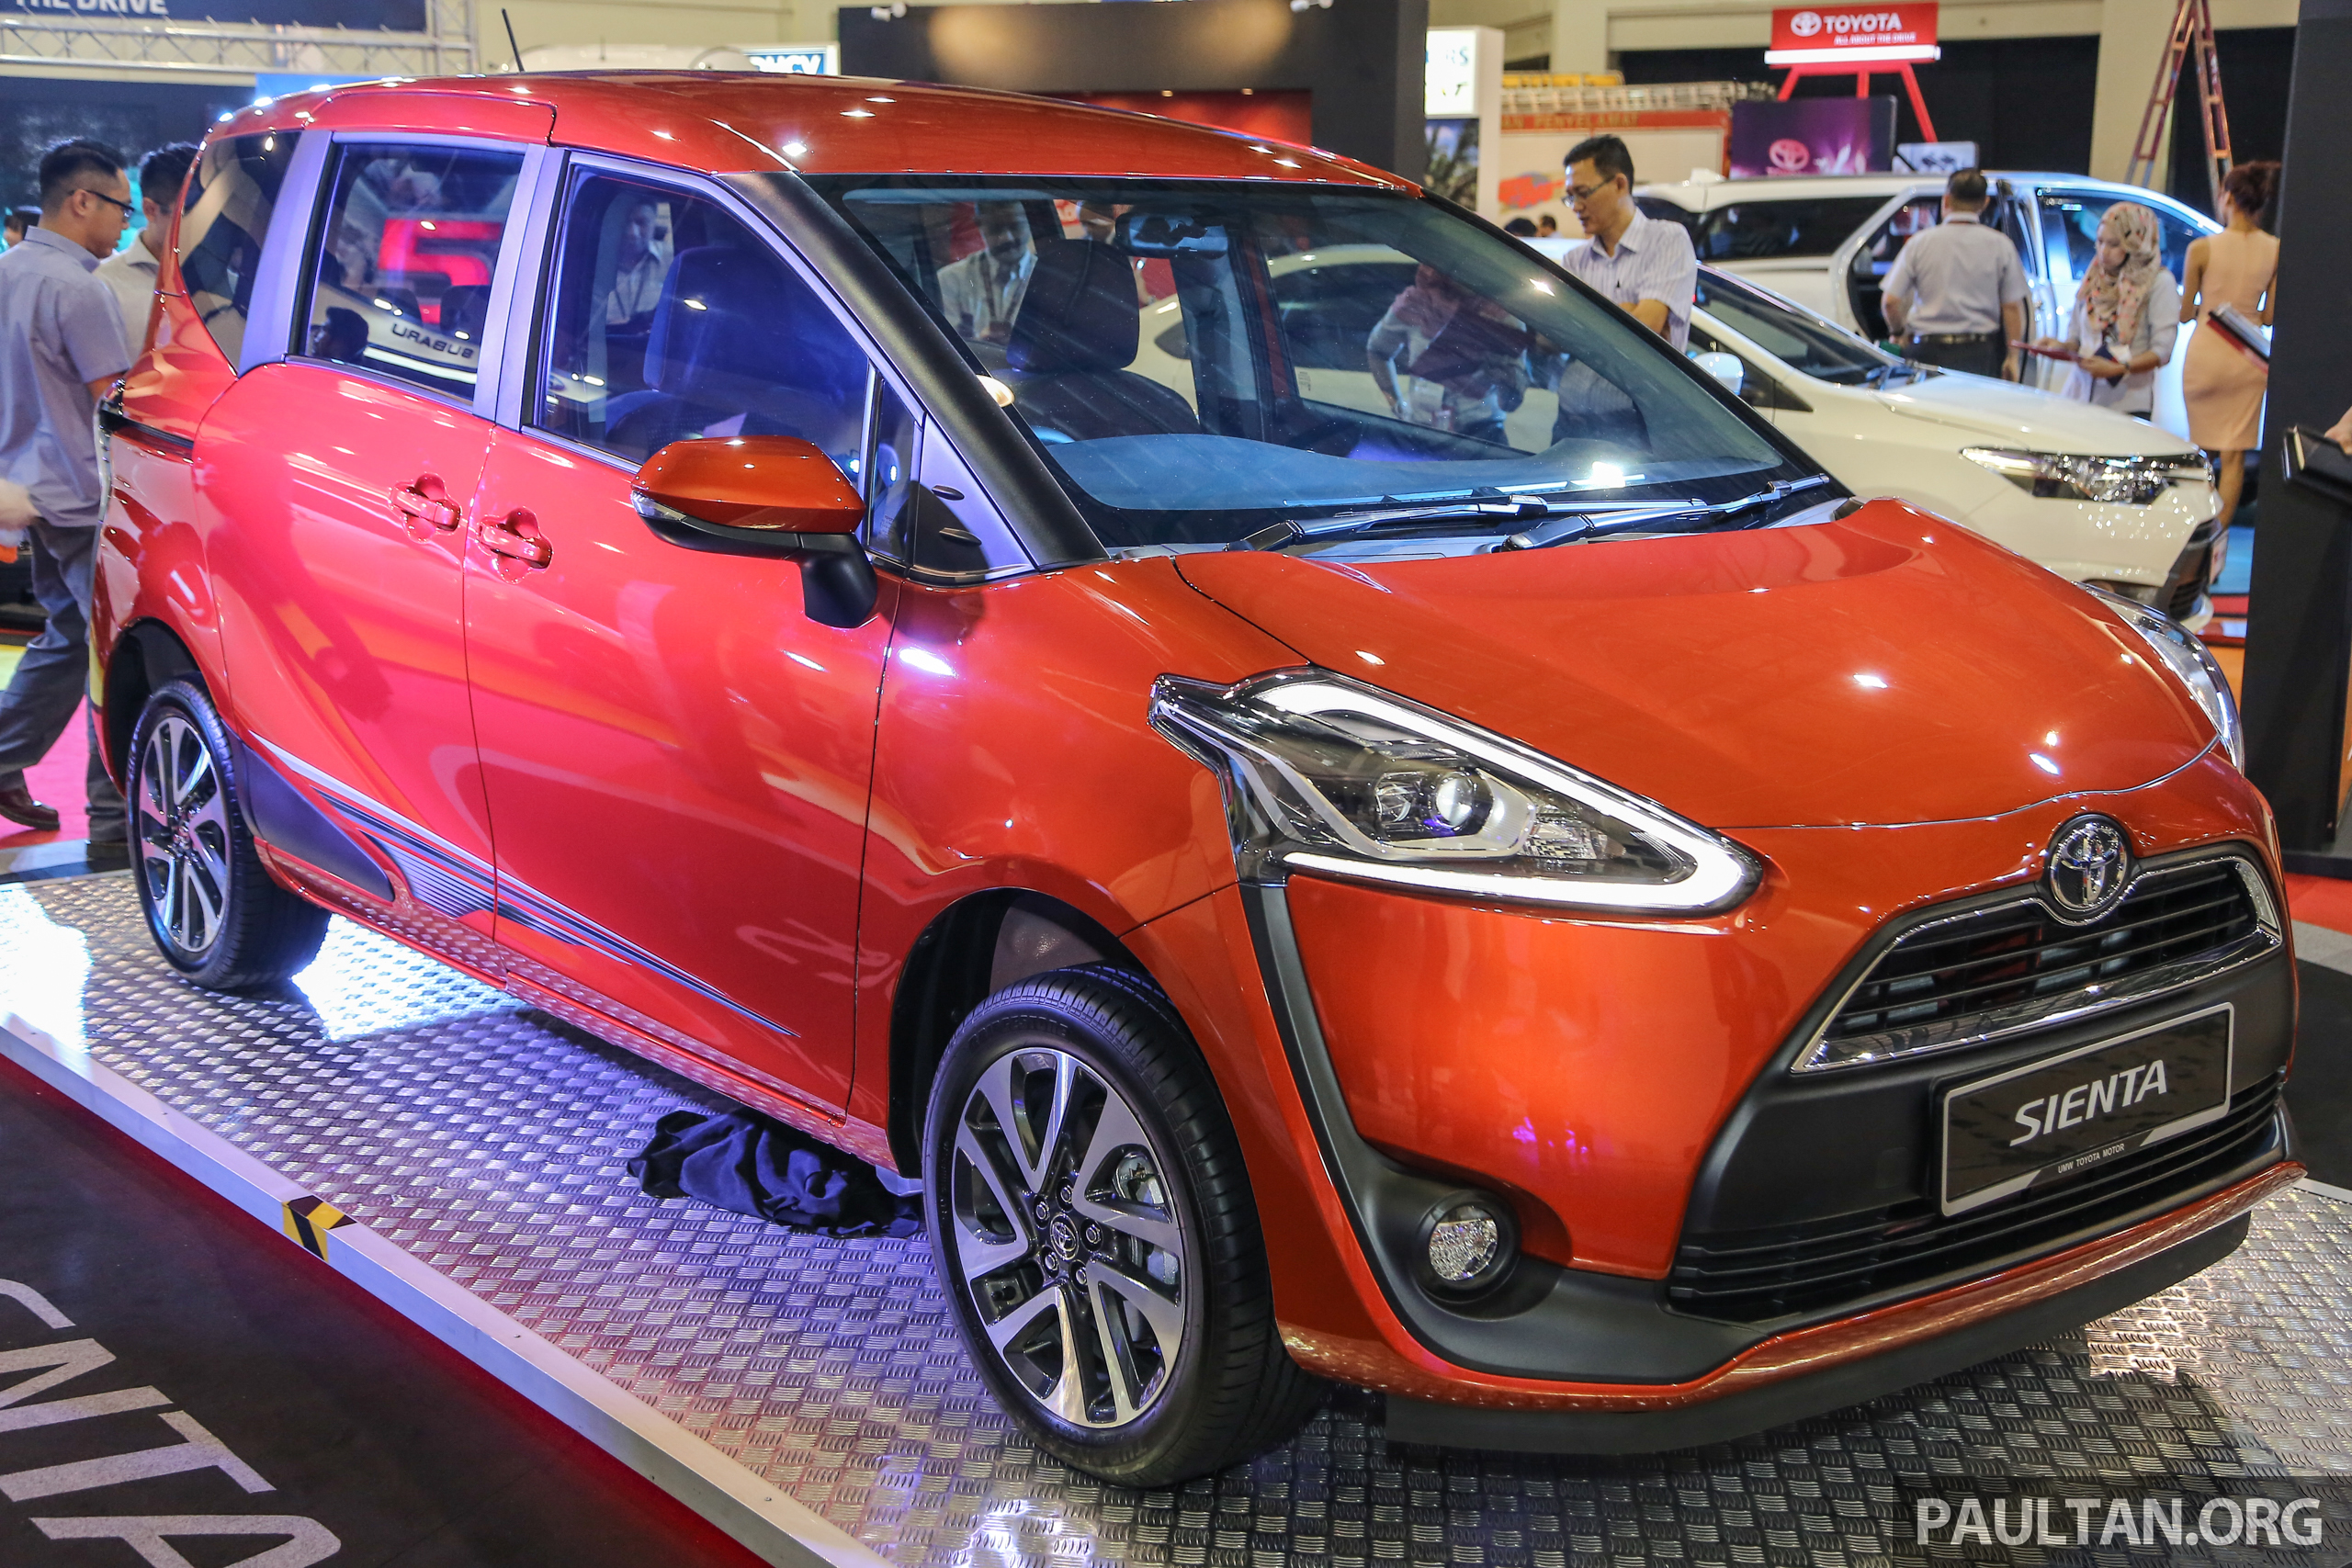 Toyota Sienta Malaysia >> Toyota Sienta MPV previewed in M'sia – coming soon? Image 496250